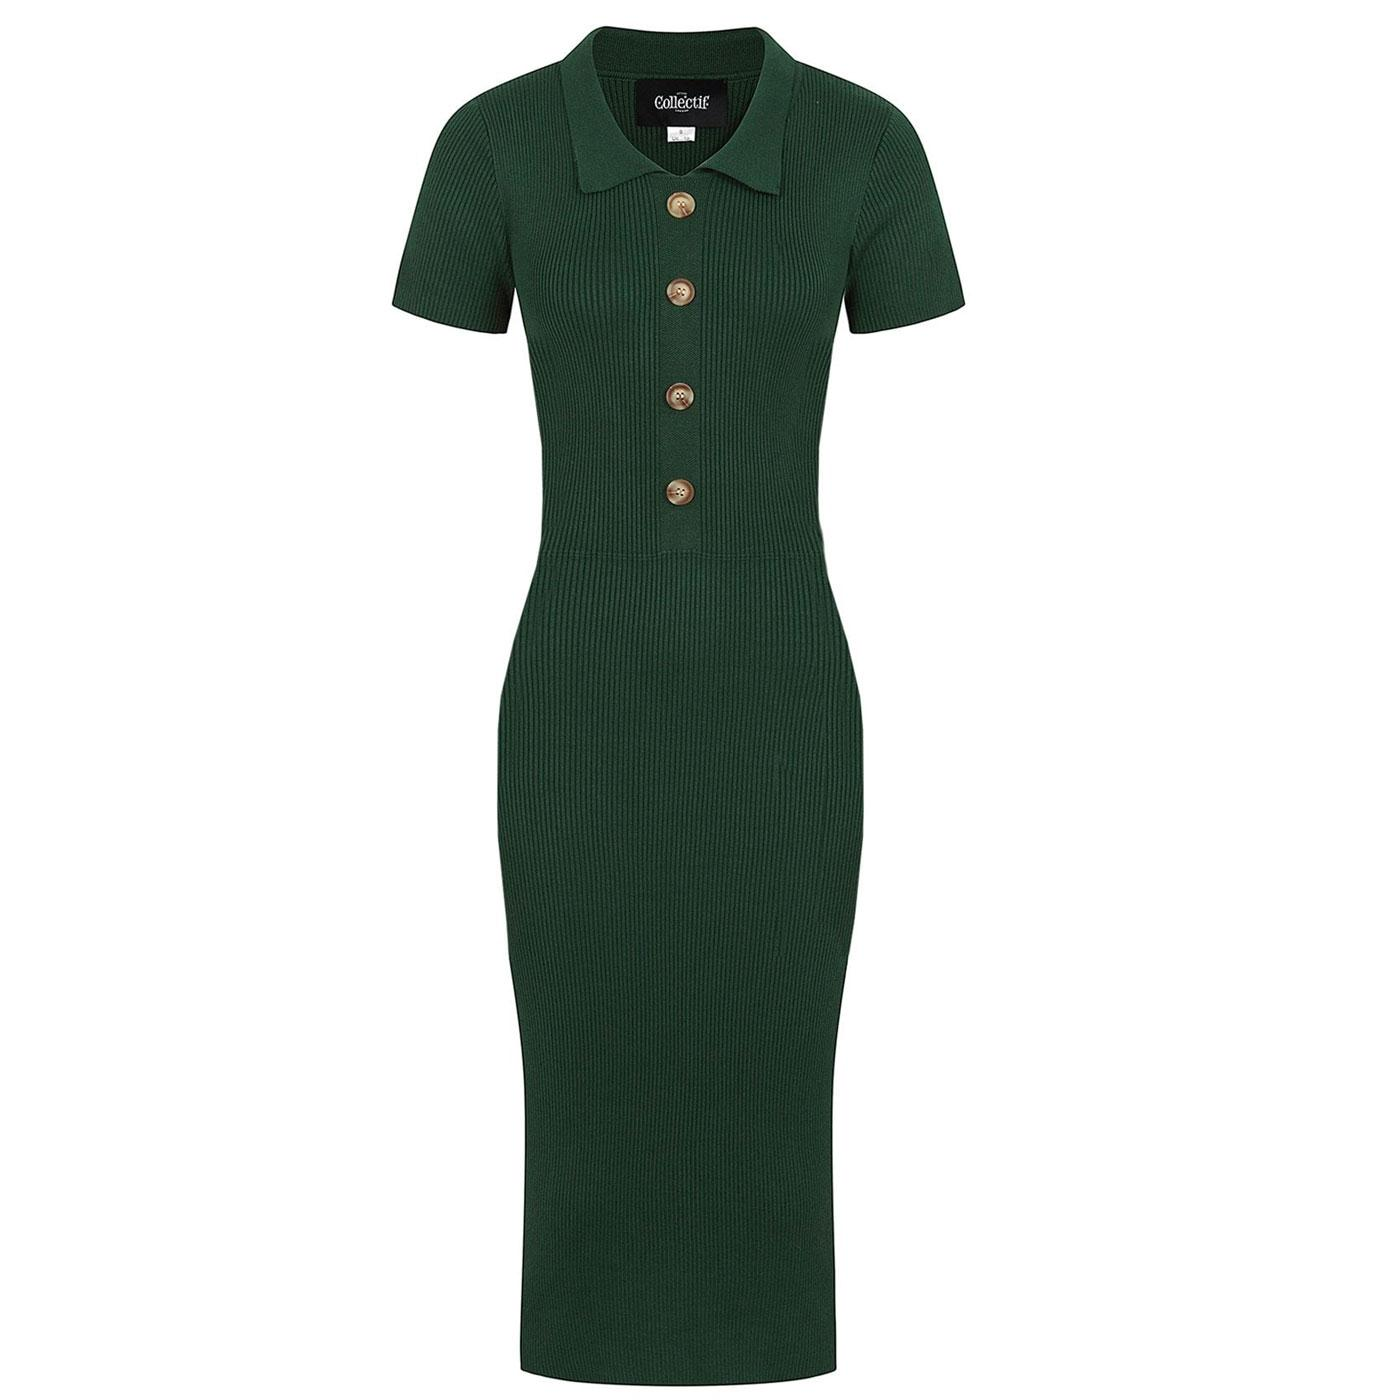 Maya COLLECTIF Retro Knitted Pencil Dress in Green